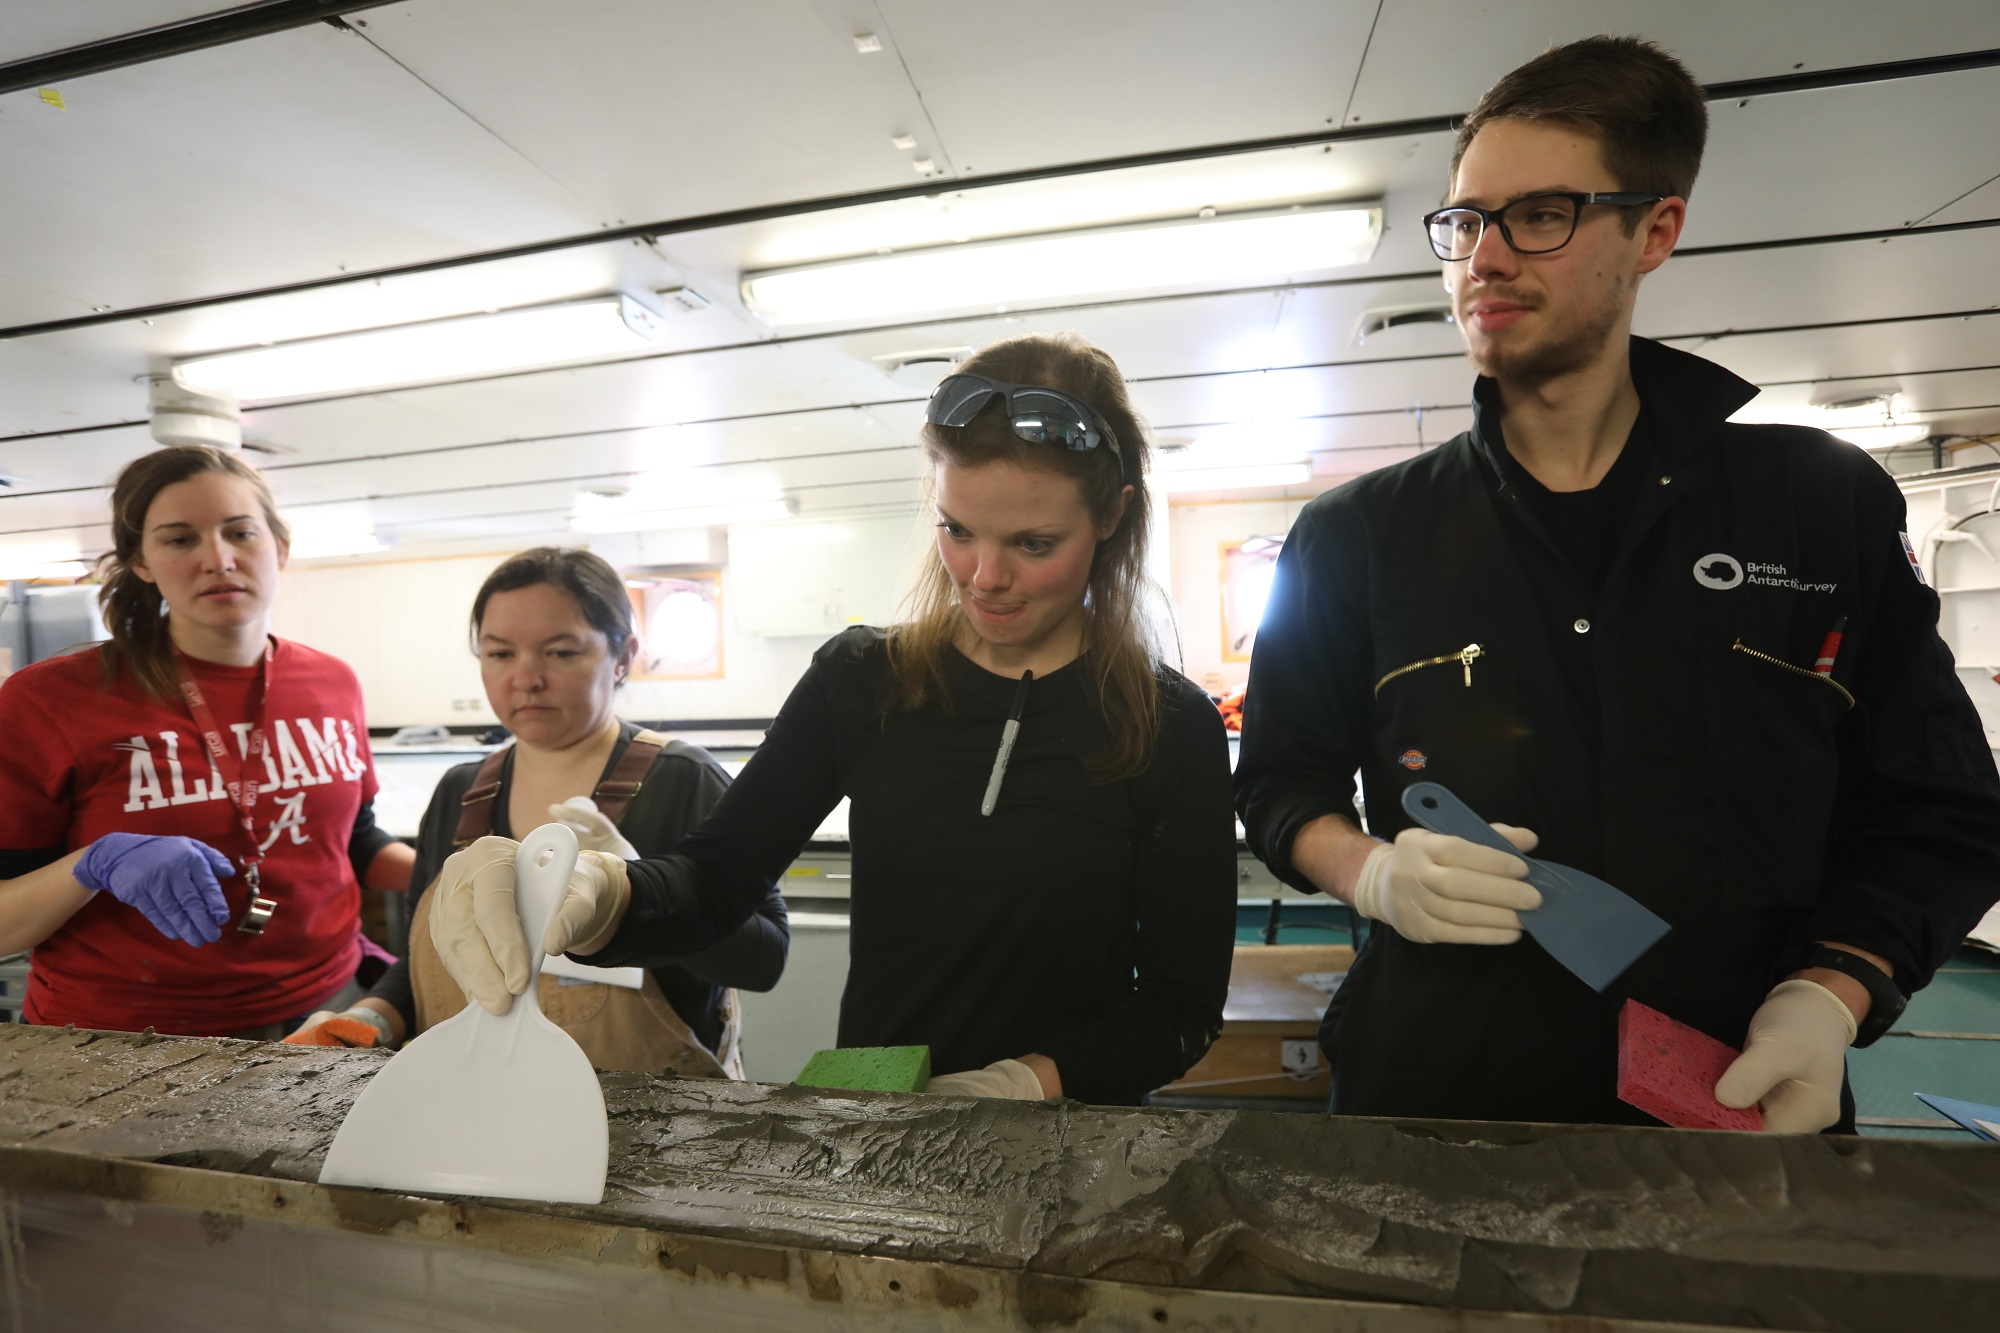 The Kasten core surface is scraped smooth by (right to left) Ph.D. students James Kirkham, Rachel Clark and Victoria Fitzgerald with drywall mud scraper. Becky Minzoni explains the process.